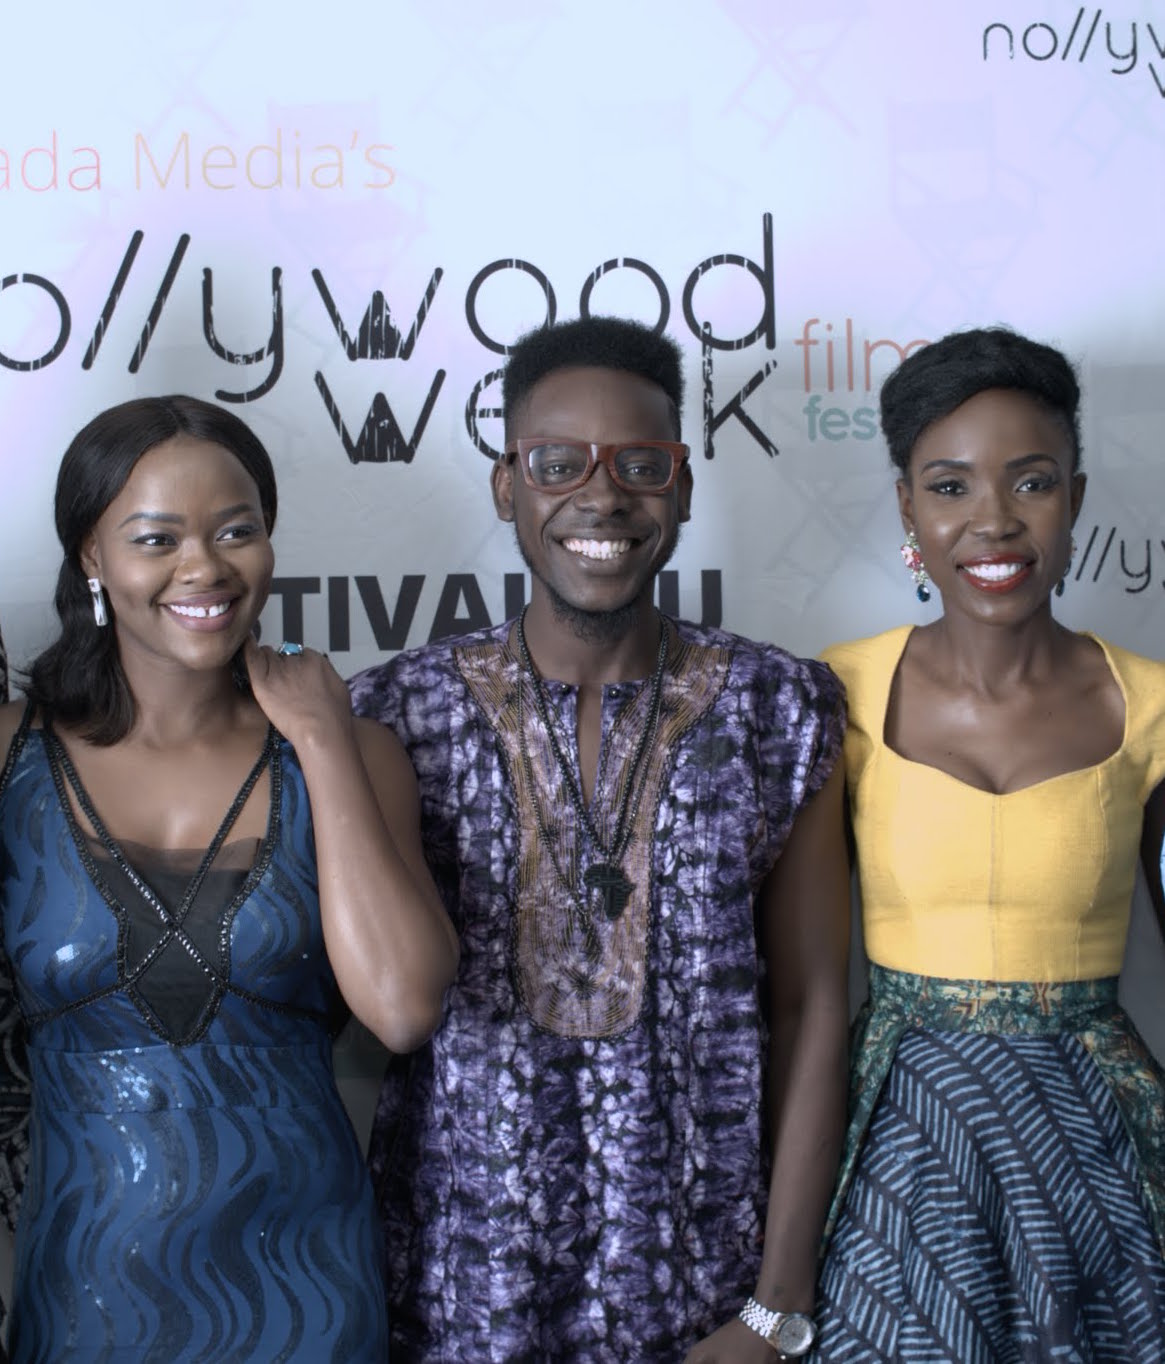 Kehinde BANKOLE (Actress) - Adekunle GOLD (Nigerian Singer) - Lala AKINDOJU (actress - The CEO)